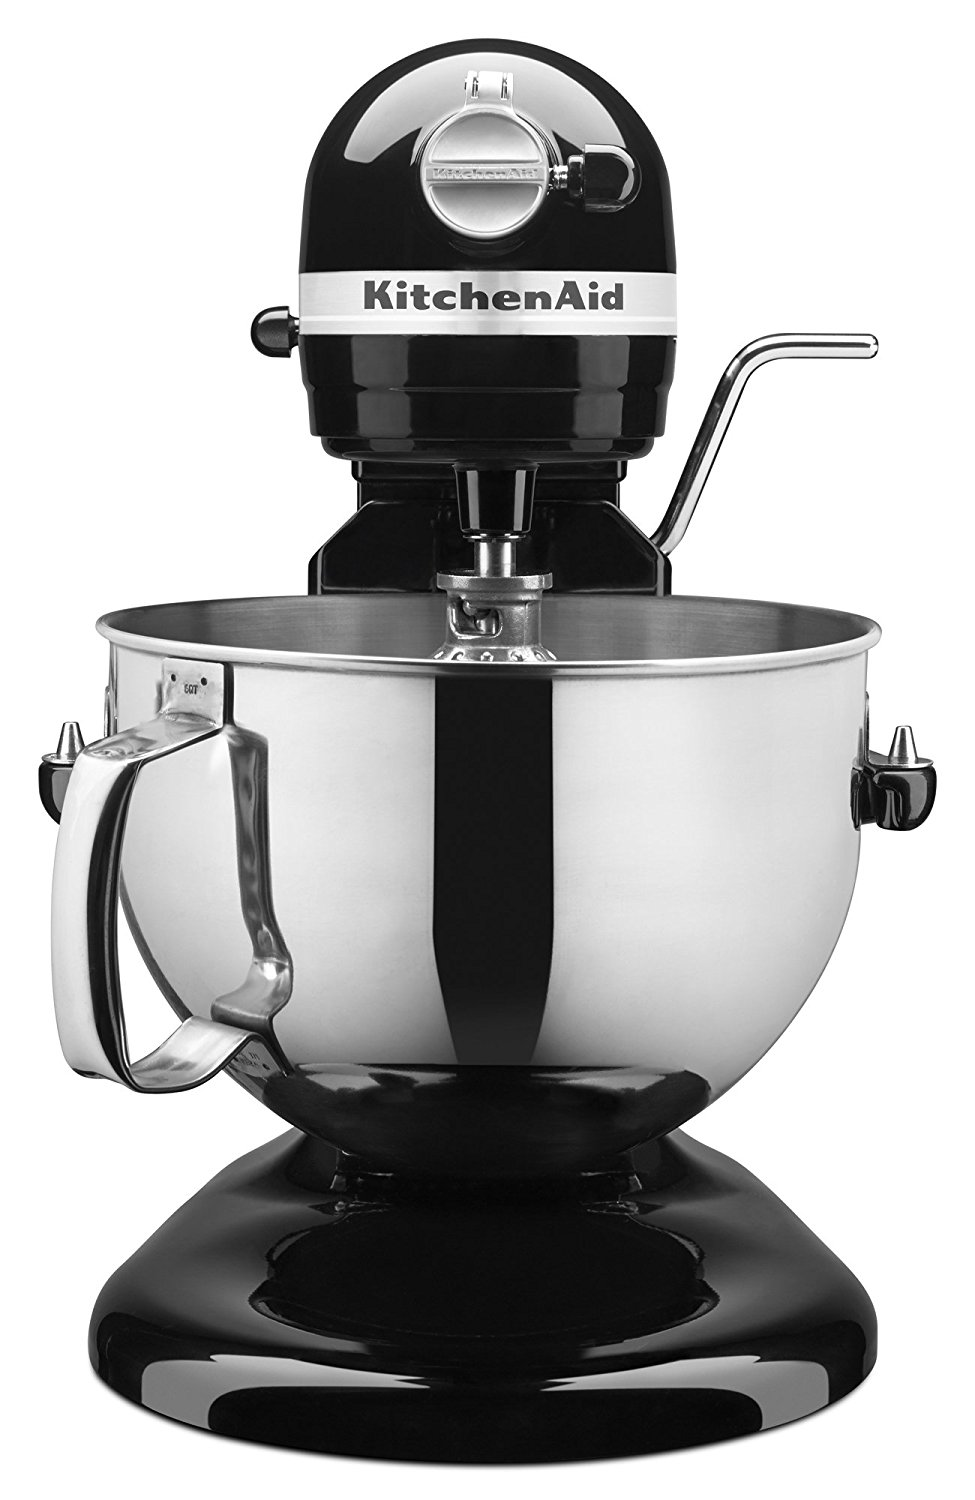 HURRY Over And Score KitchenAid KL26M1XOB Professional 6 Qt. Bowl Lift  Stand Mixer Only $219.95, Down From $449.99 SHIPPED! Kredd